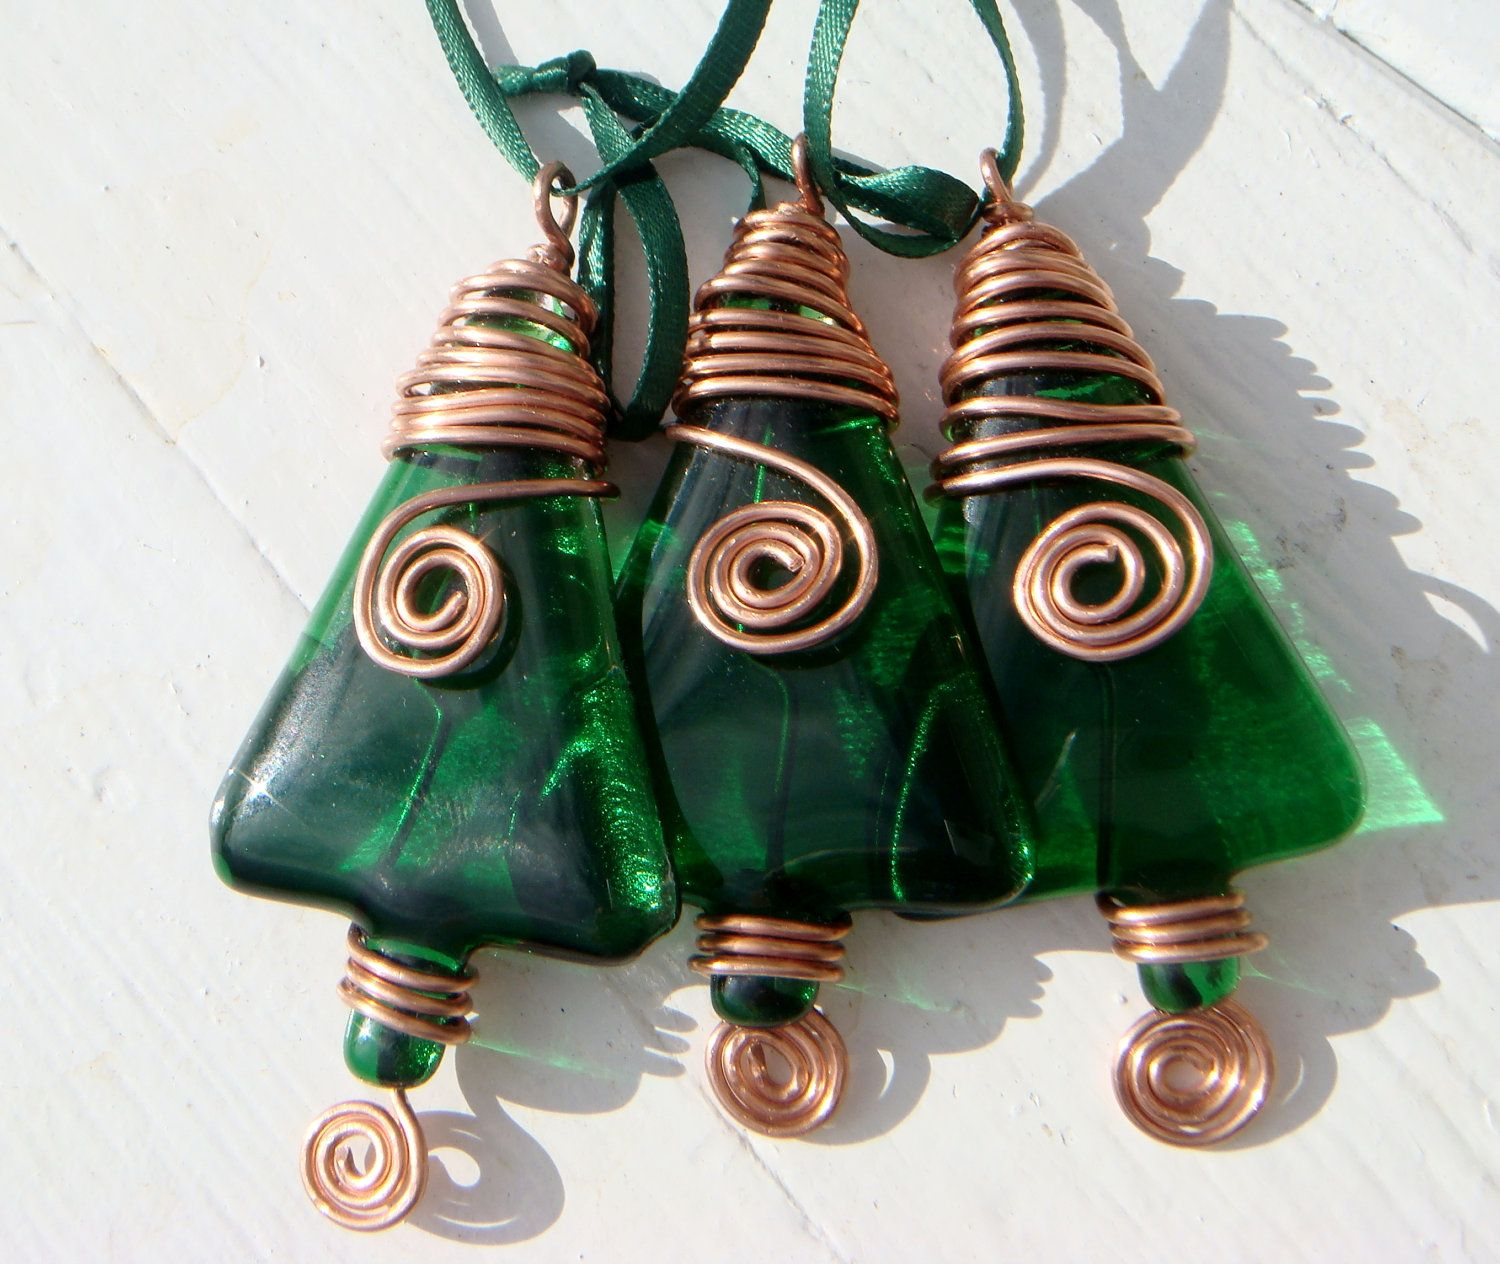 Christmas decorations Set of three green fused glass xmas tree decorations with copper wire detail